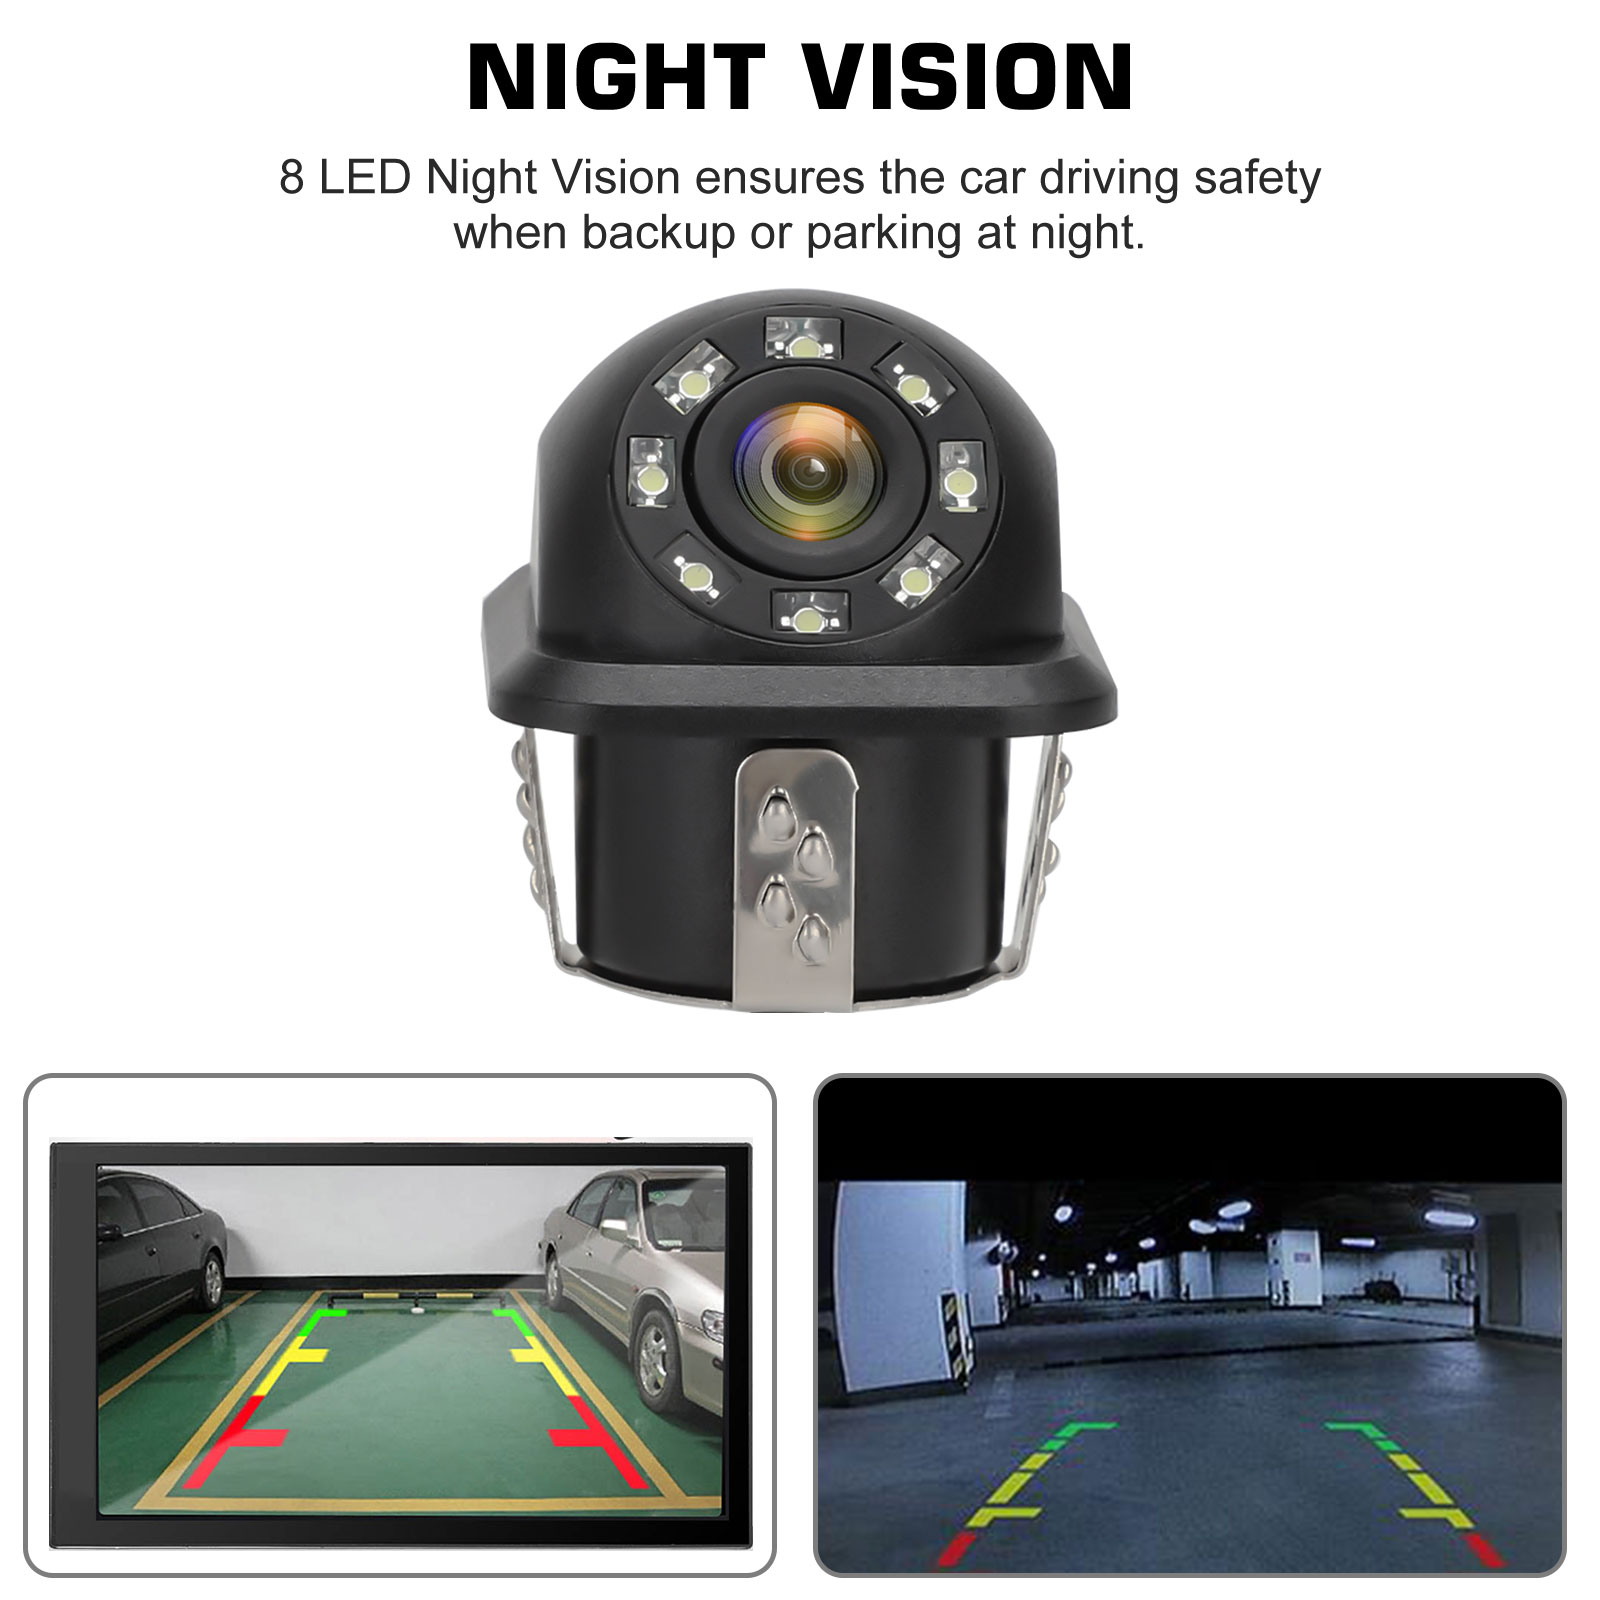 Waterproof-8-LED-Car-Backup-Rear-View-Reverse-Parking-HD-Camera-w-Night-Vision thumbnail 5